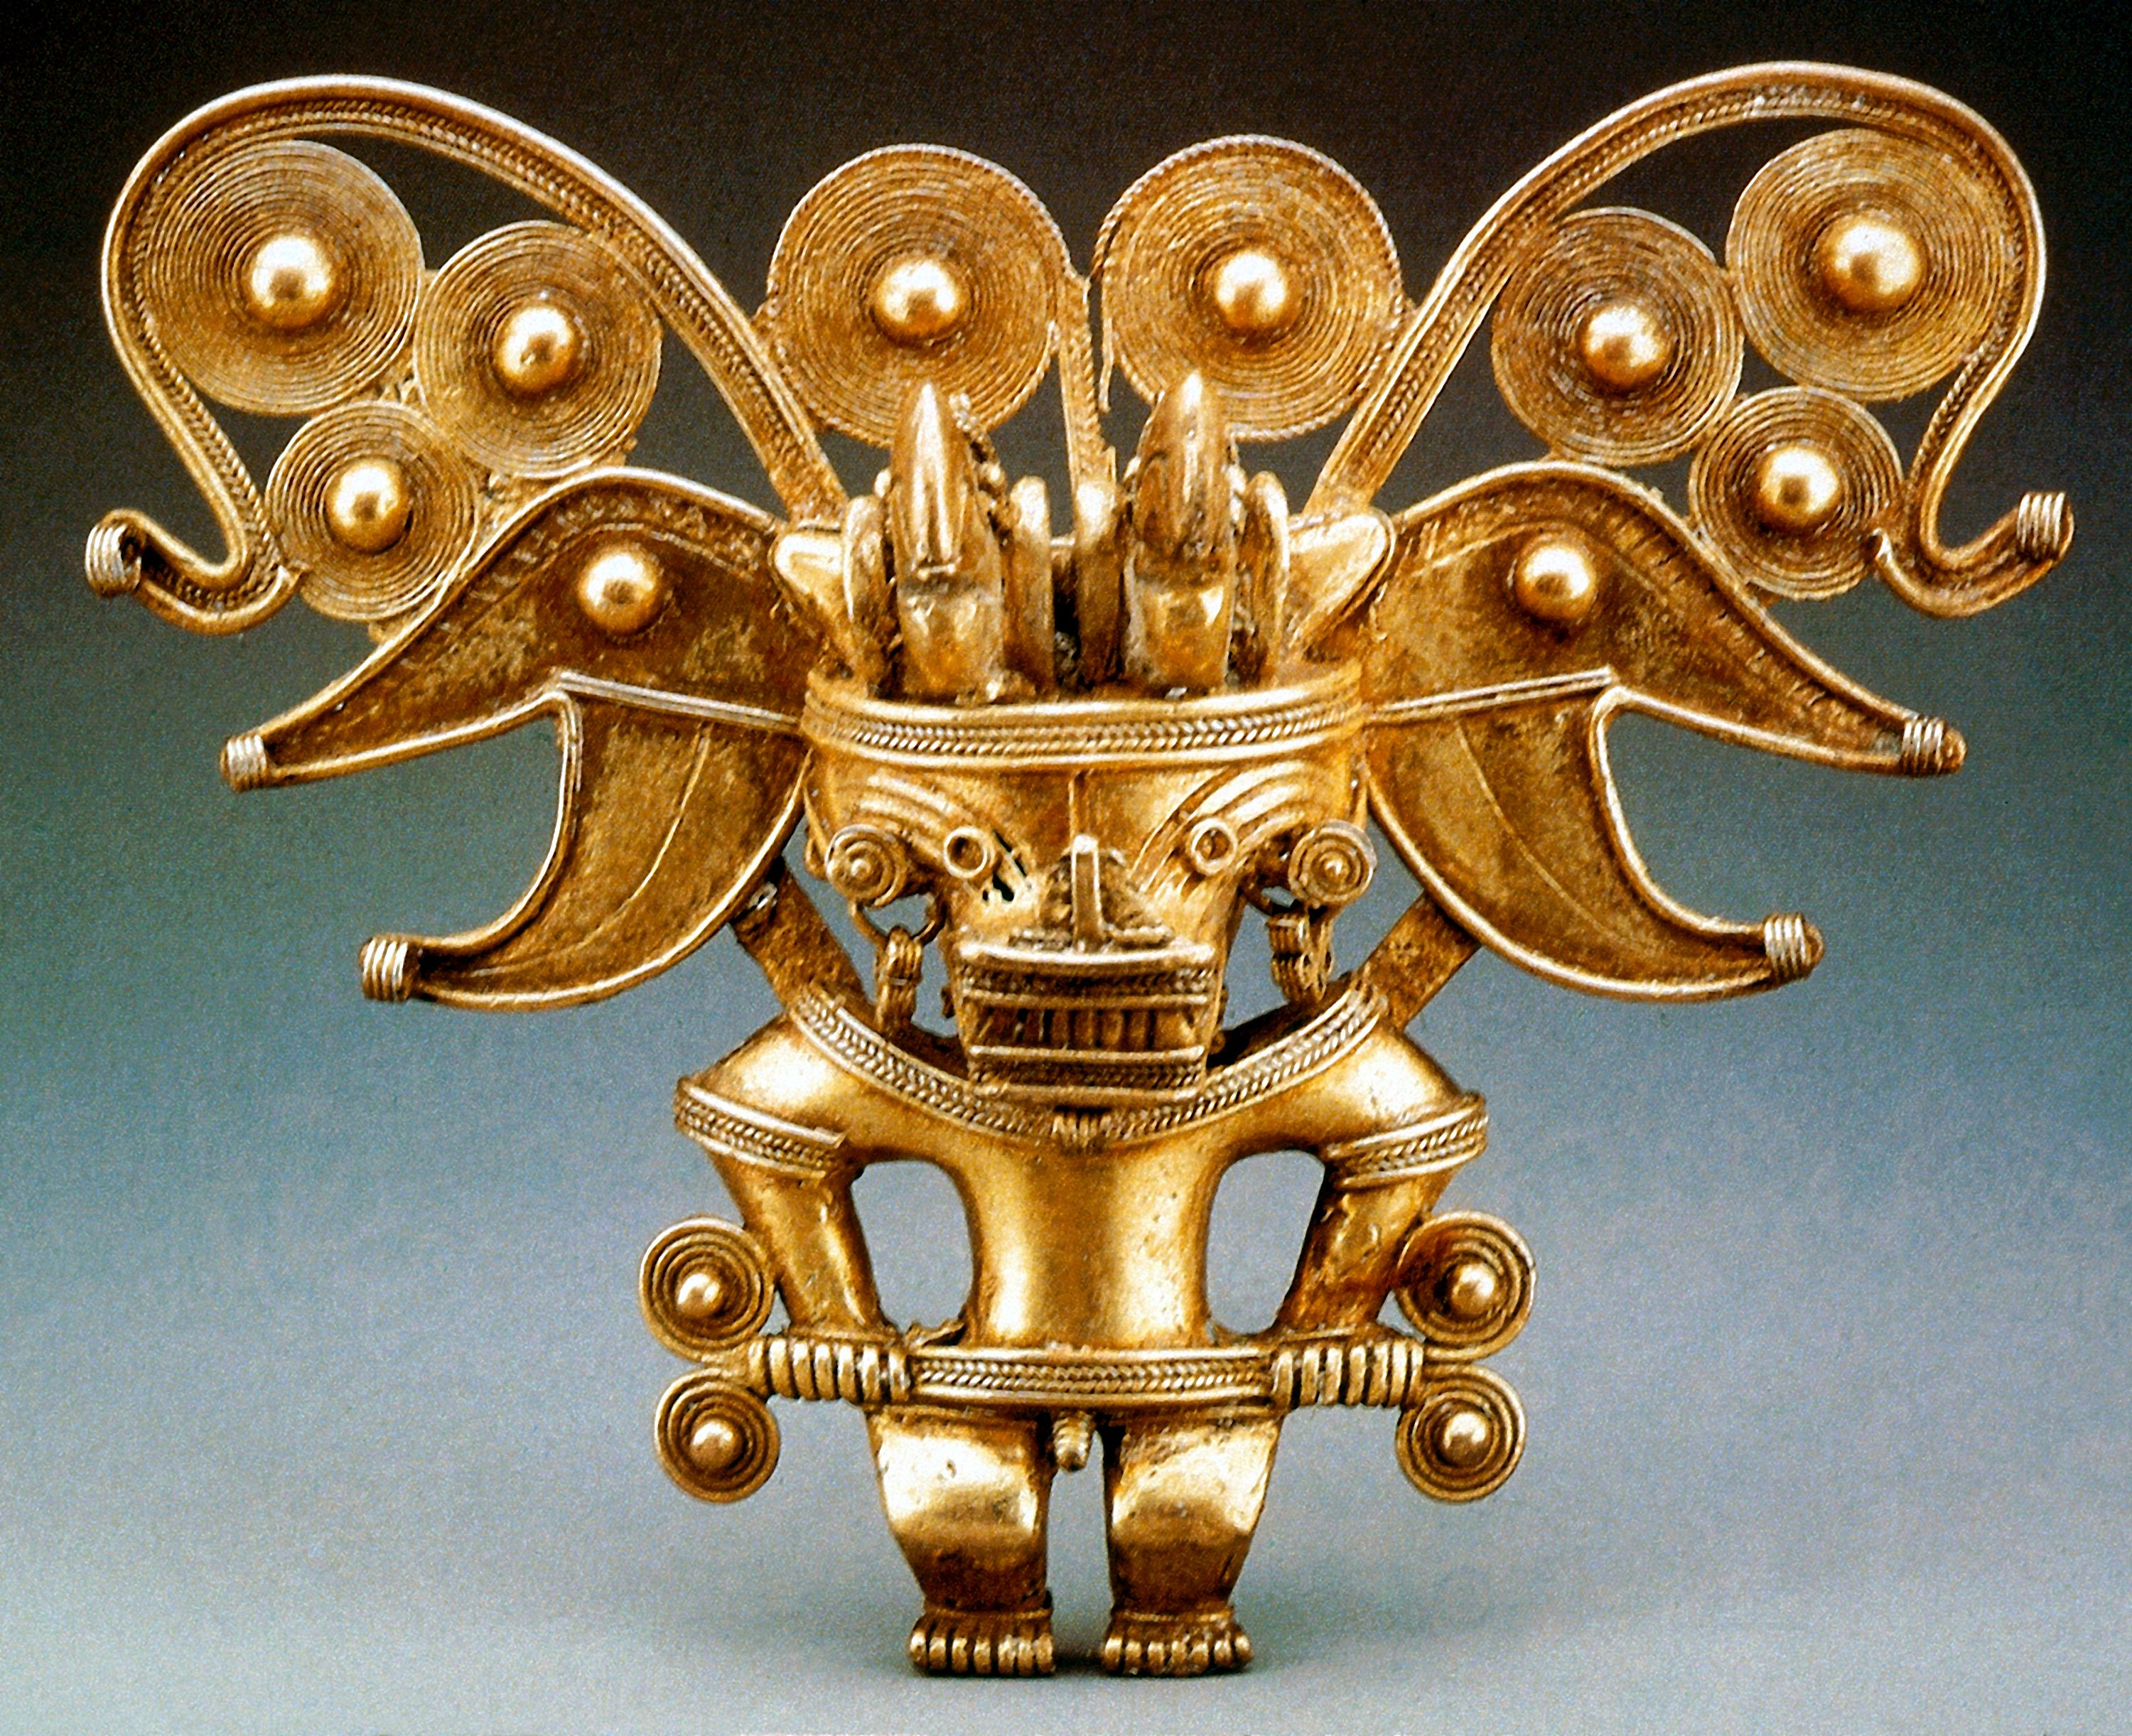 Arte Precolombino Tayrona Gold Pendant Depicting Masked Priestly Figure Tairona Culture